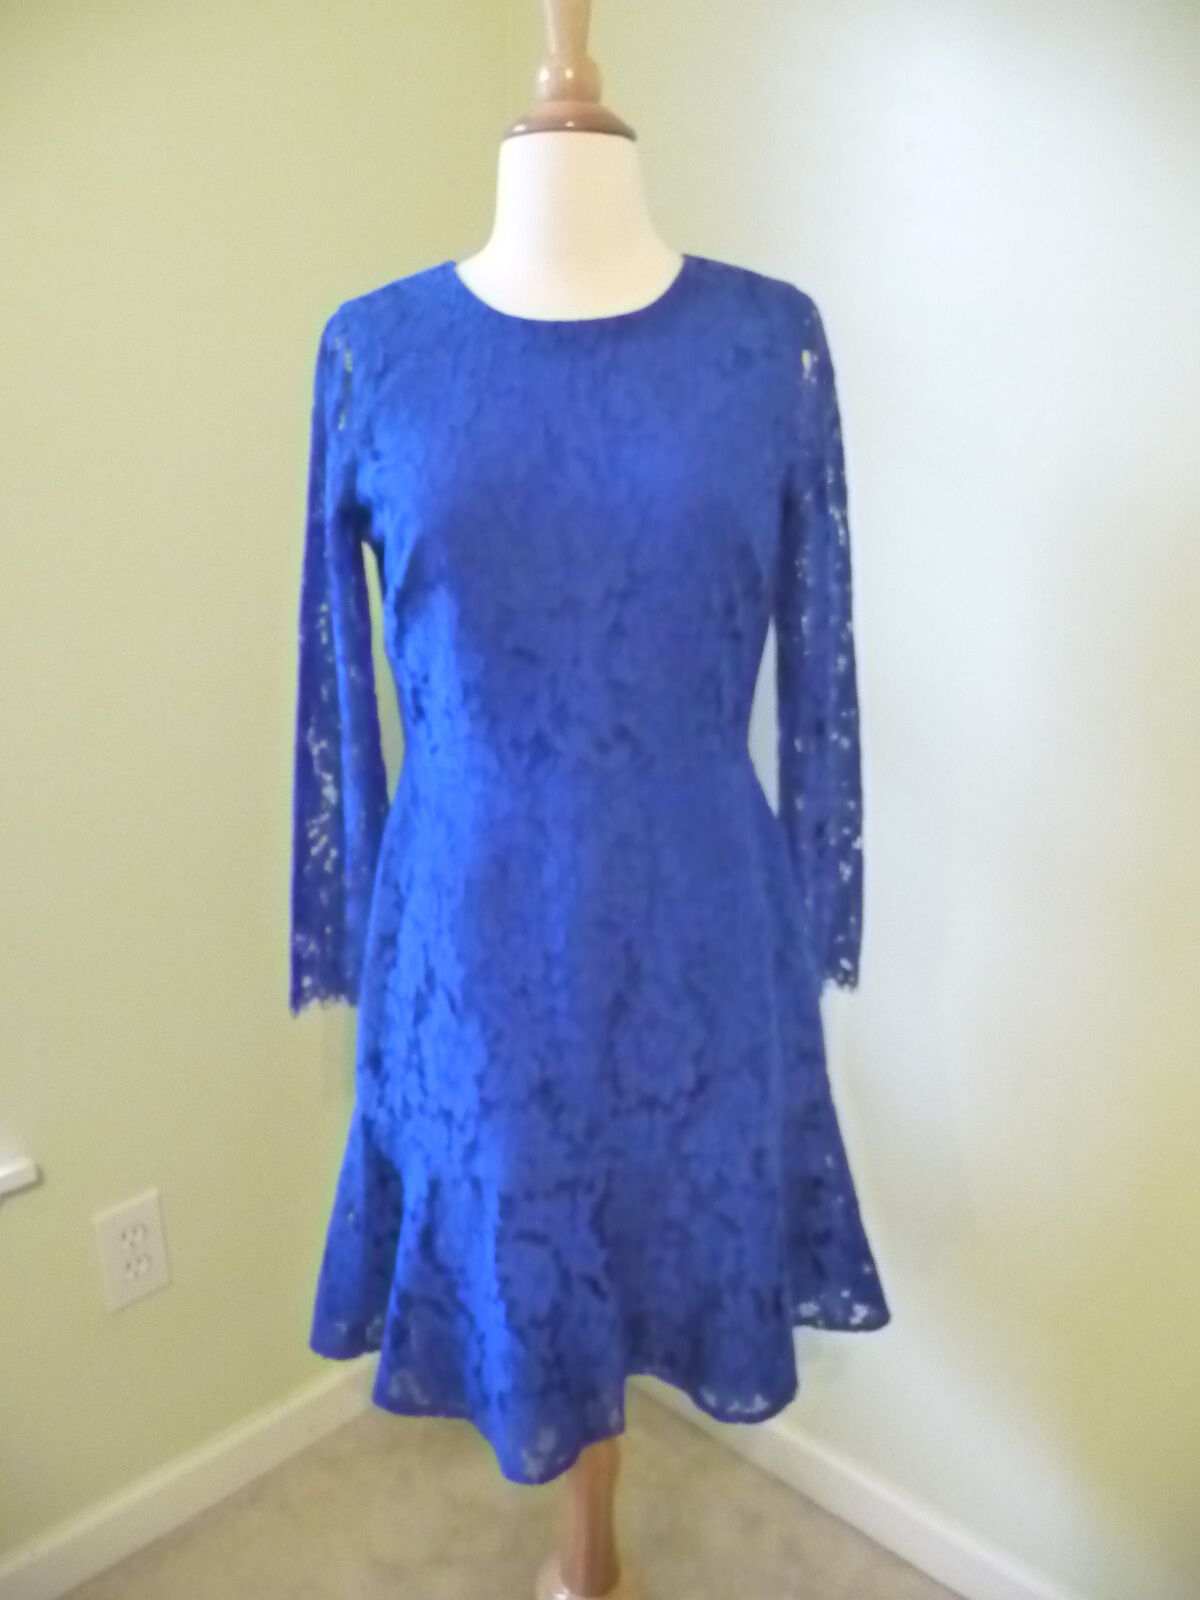 NEW J.CREW LONG-SLEEVE DRESS IN FLORAL LACE, E5036, BRIGHT OCEN, Größe 4,